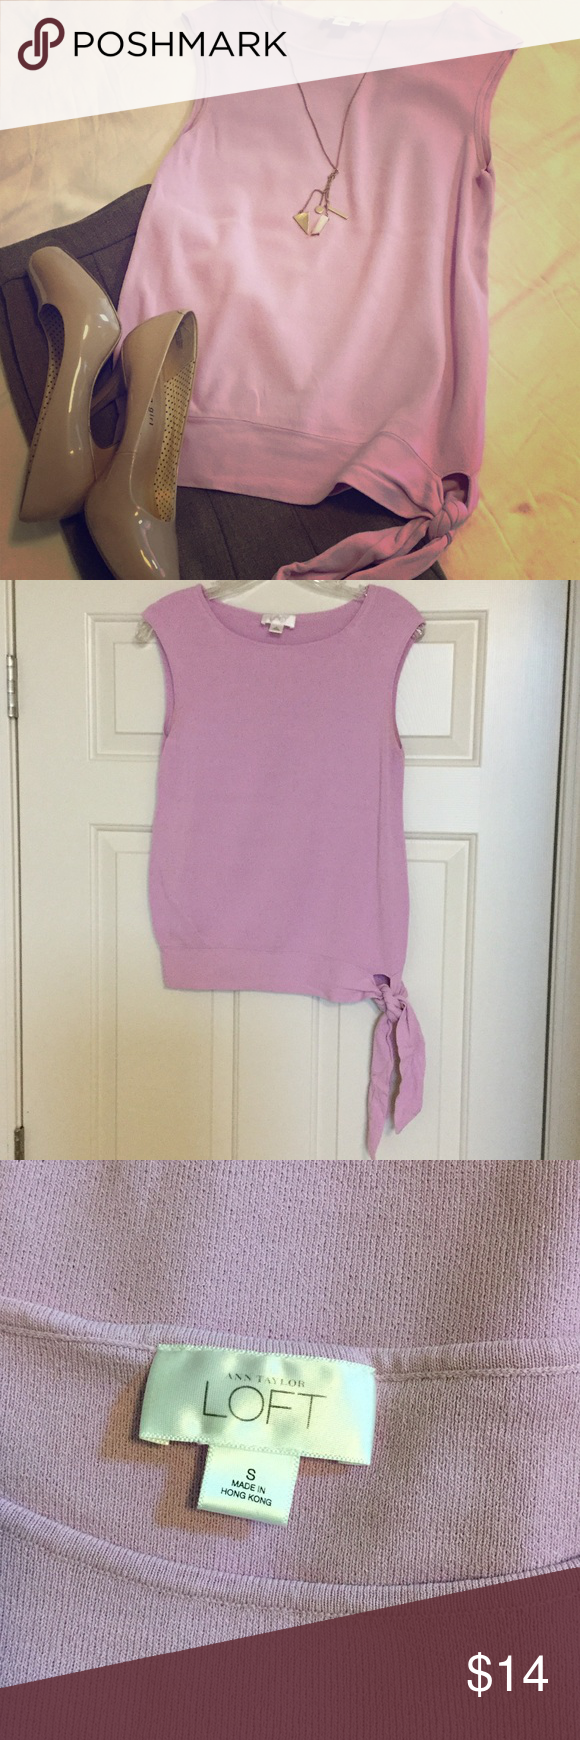 👠 Cute Sleeveless Top 👠 This lavender sleeveless top is just adorable! It's a rayon/nylon mix. Very comfortable and flowy. Professional look, with a fun tie at the waist. Size small. LOFT Tops Tank Tops